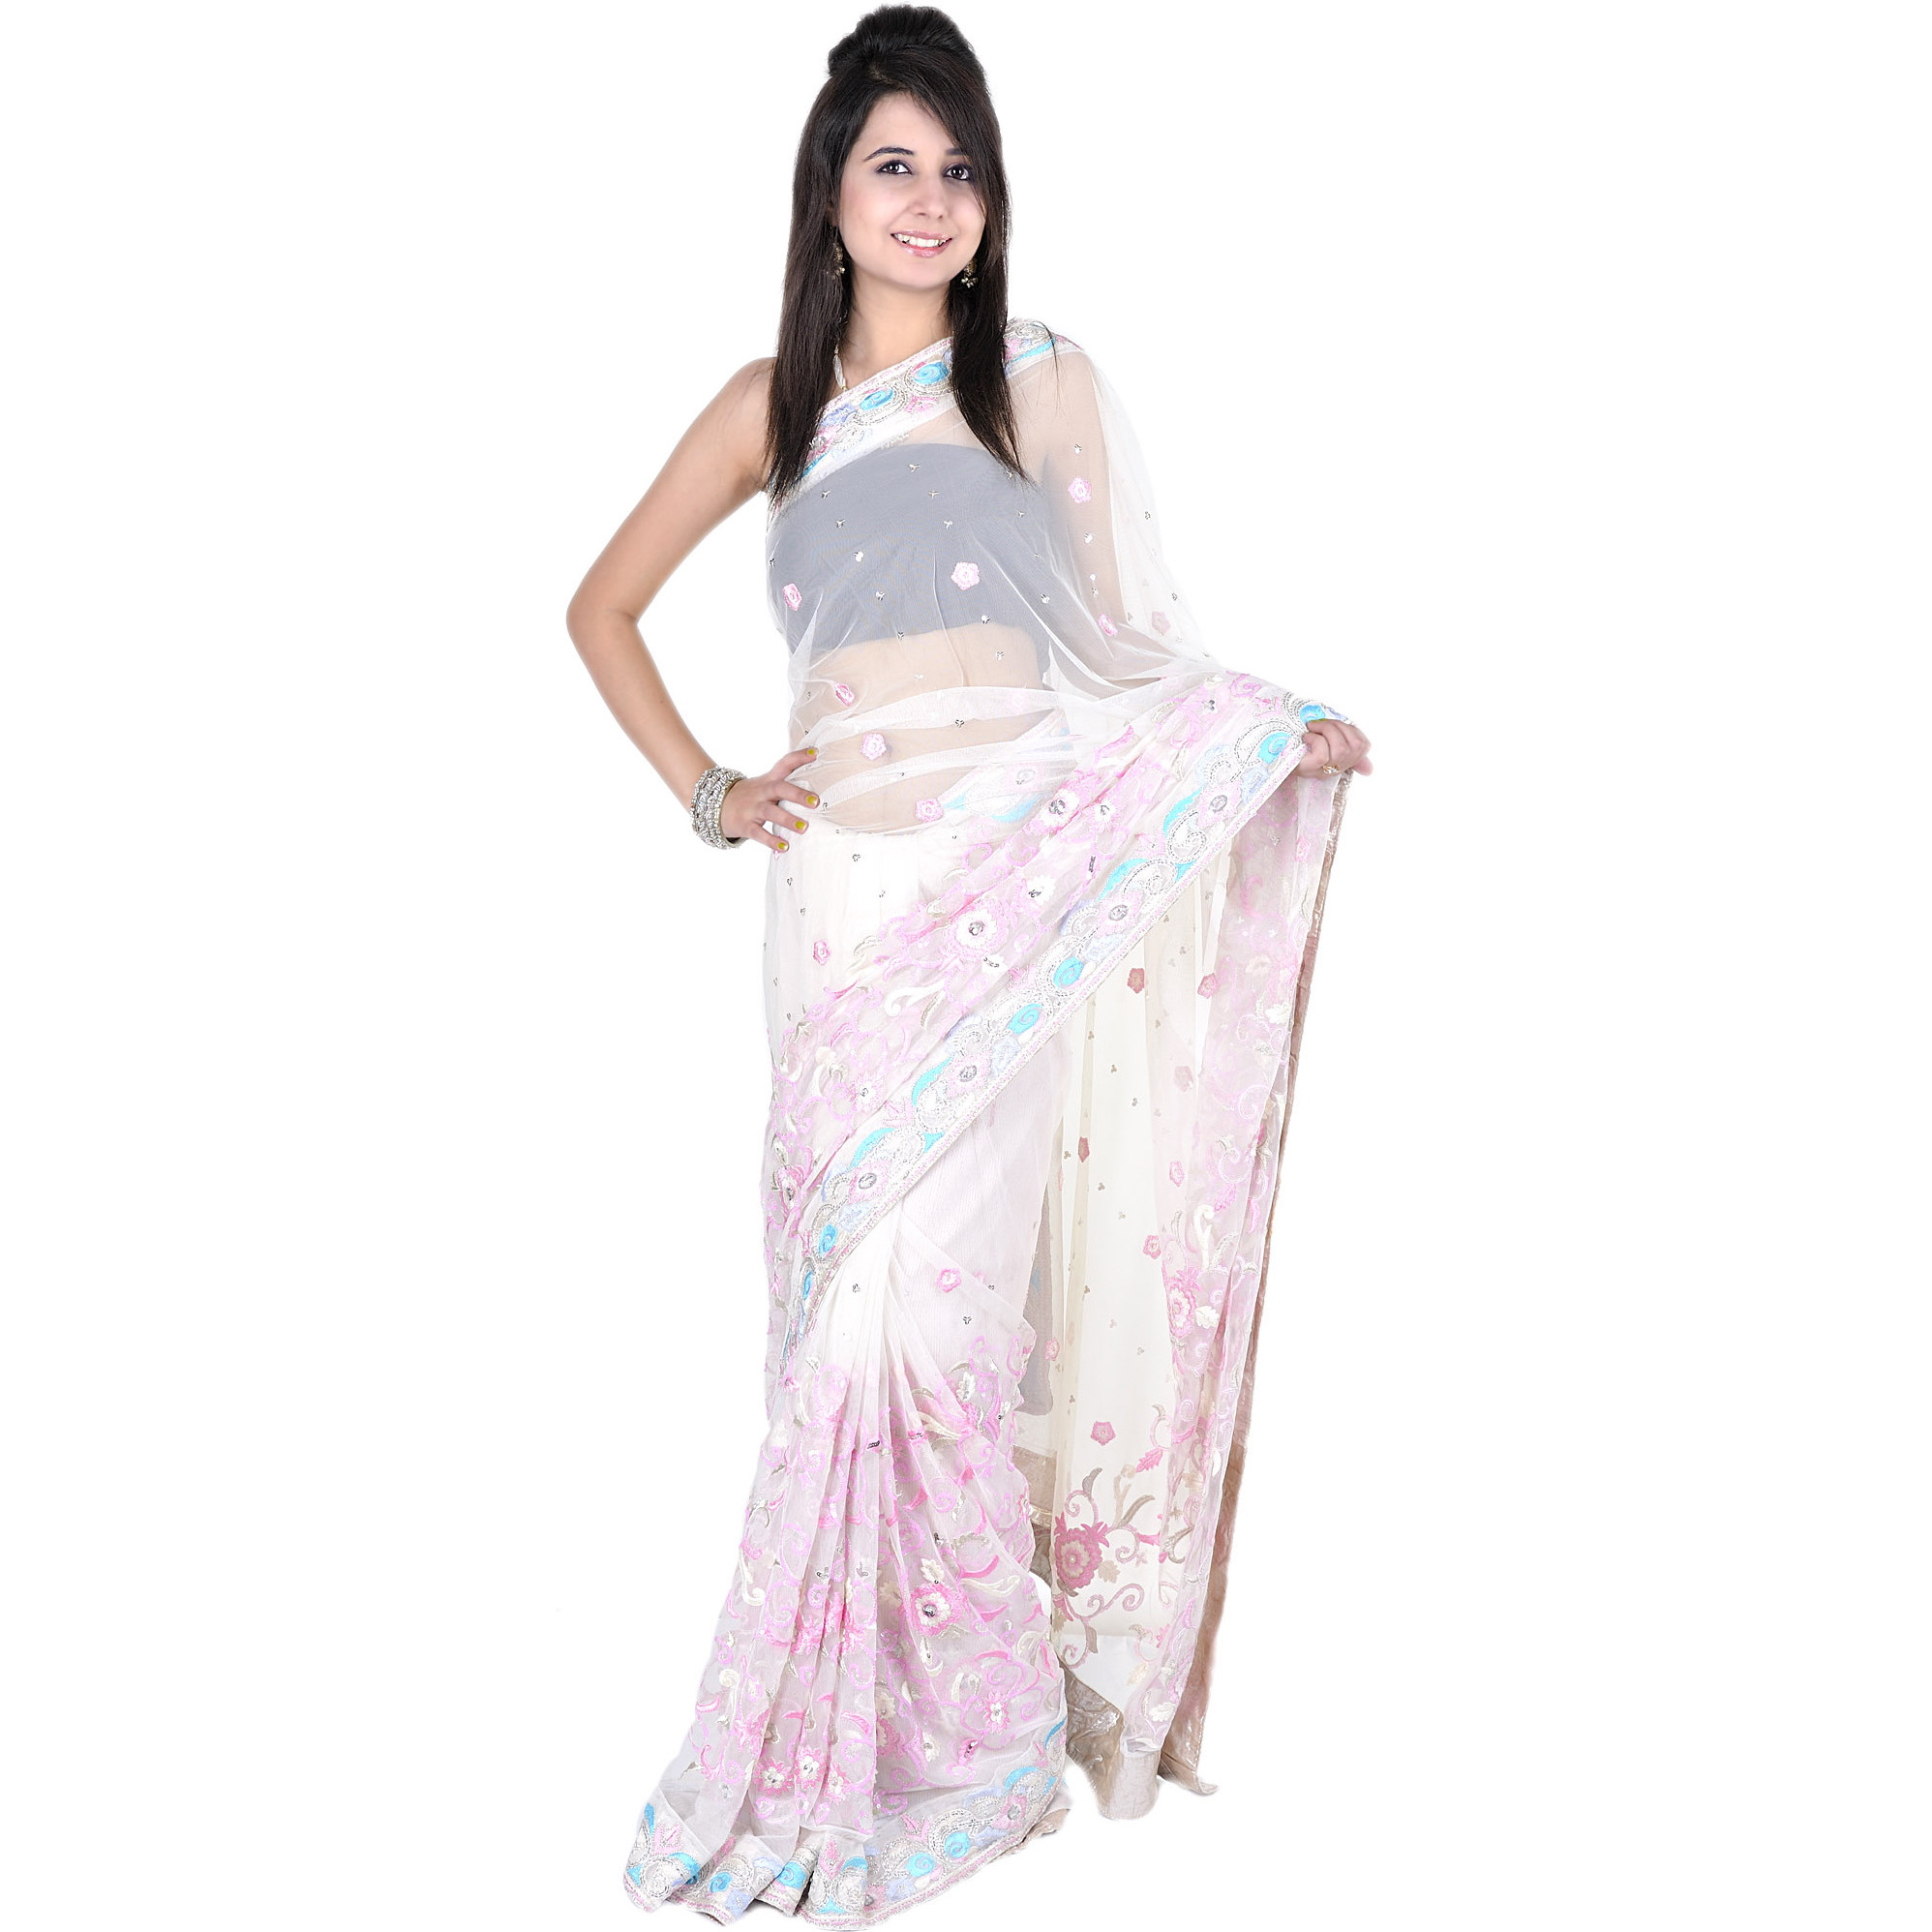 Winter-White Designer Wedding Sari with Ari Embroidery and Sequins in Pink